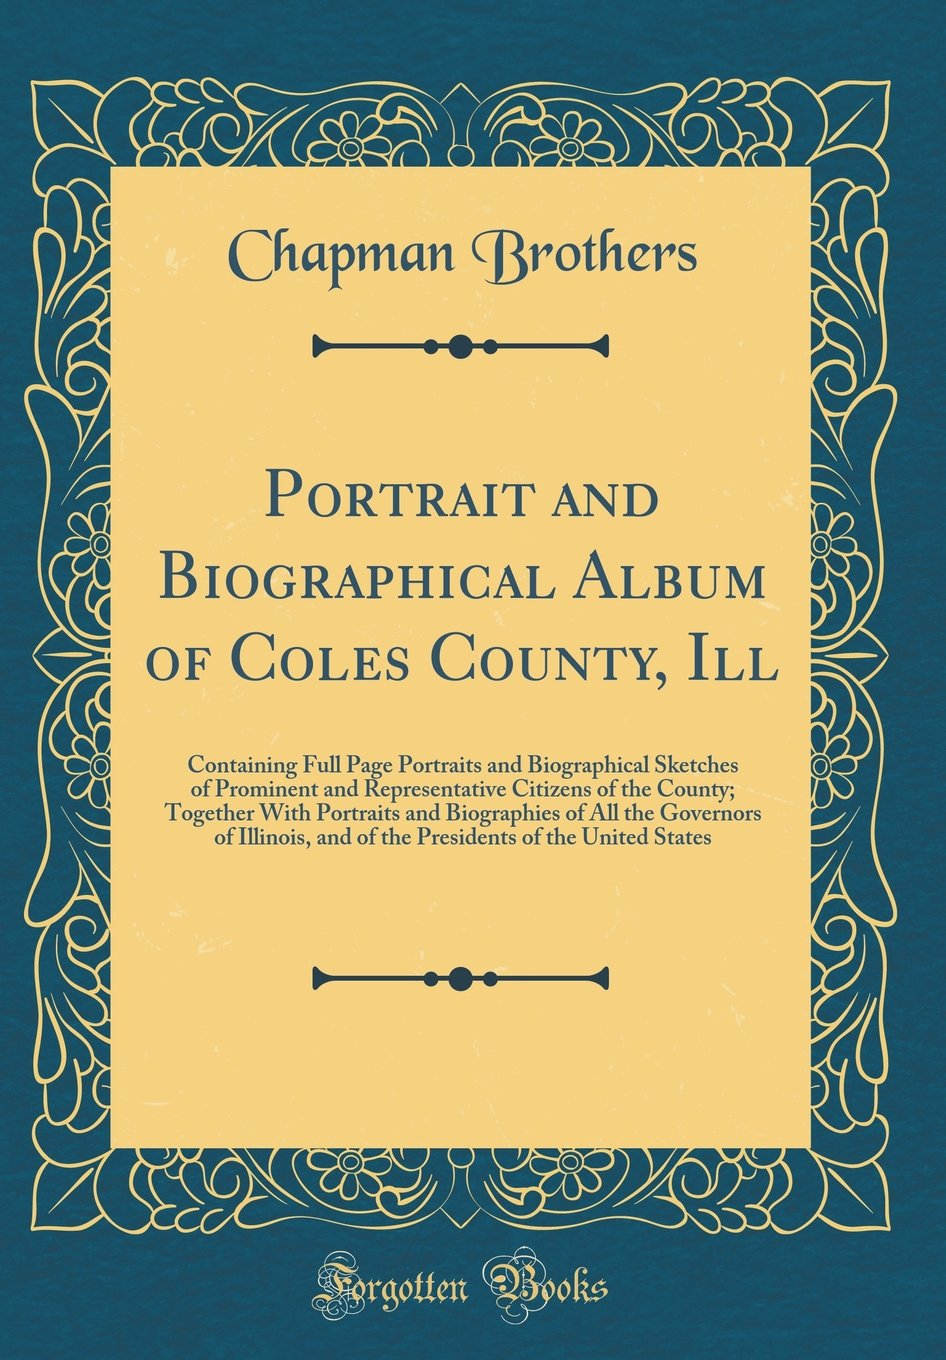 Read Online Portrait and Biographical Album of Coles County, Ill: Containing Full Page Portraits and Biographical Sketches of Prominent and Representative ... All the Governors of Illinois, and of the Pre PDF